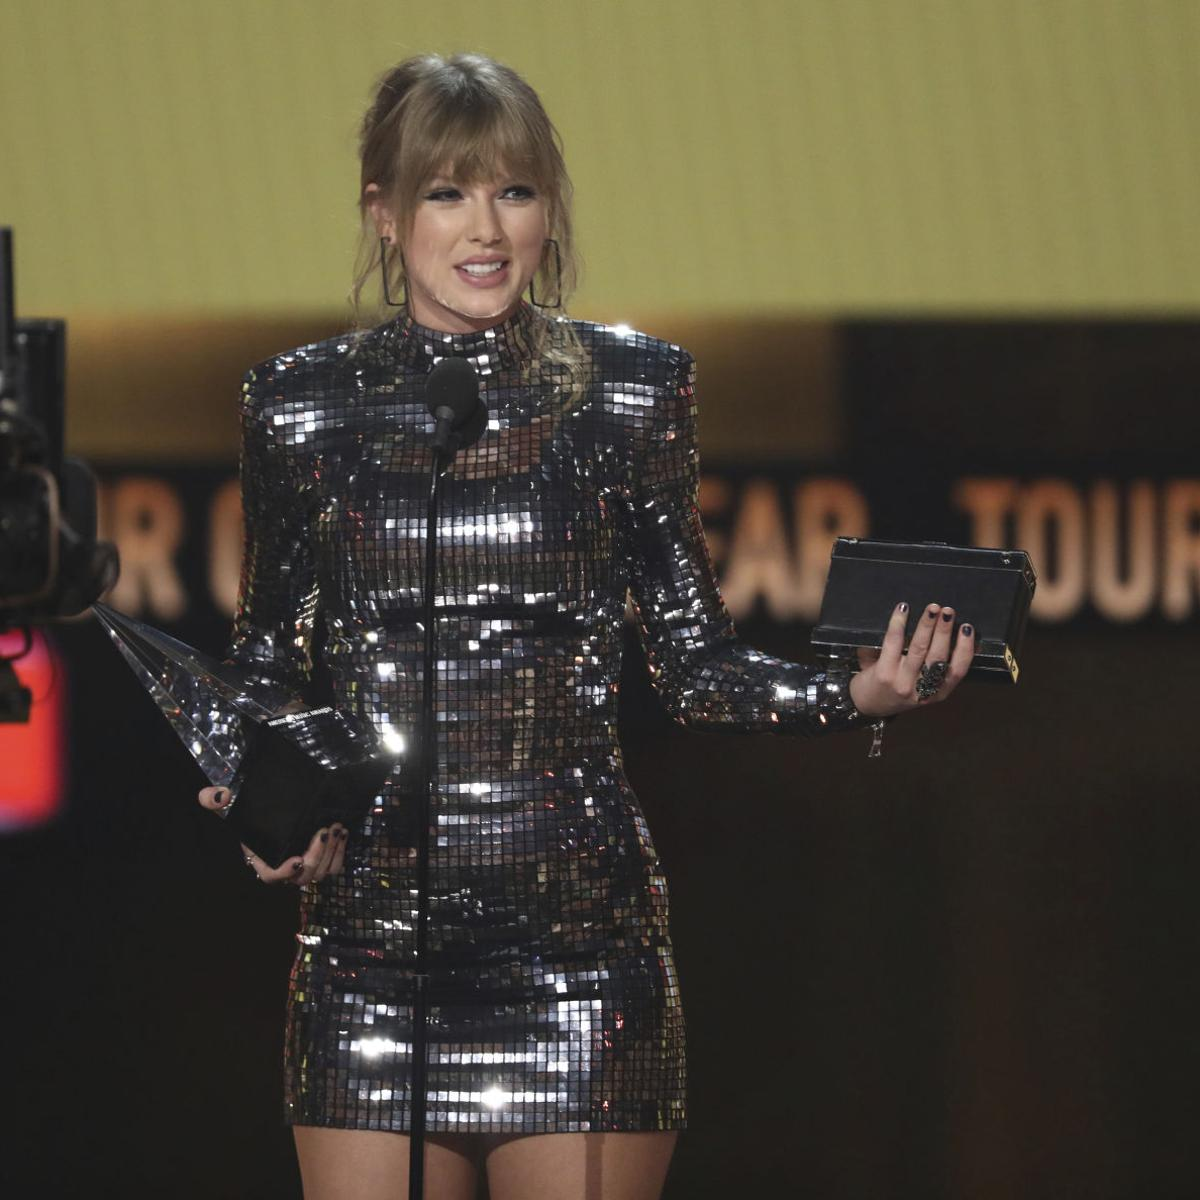 List of winners at the 2018 American Music Awards | Music